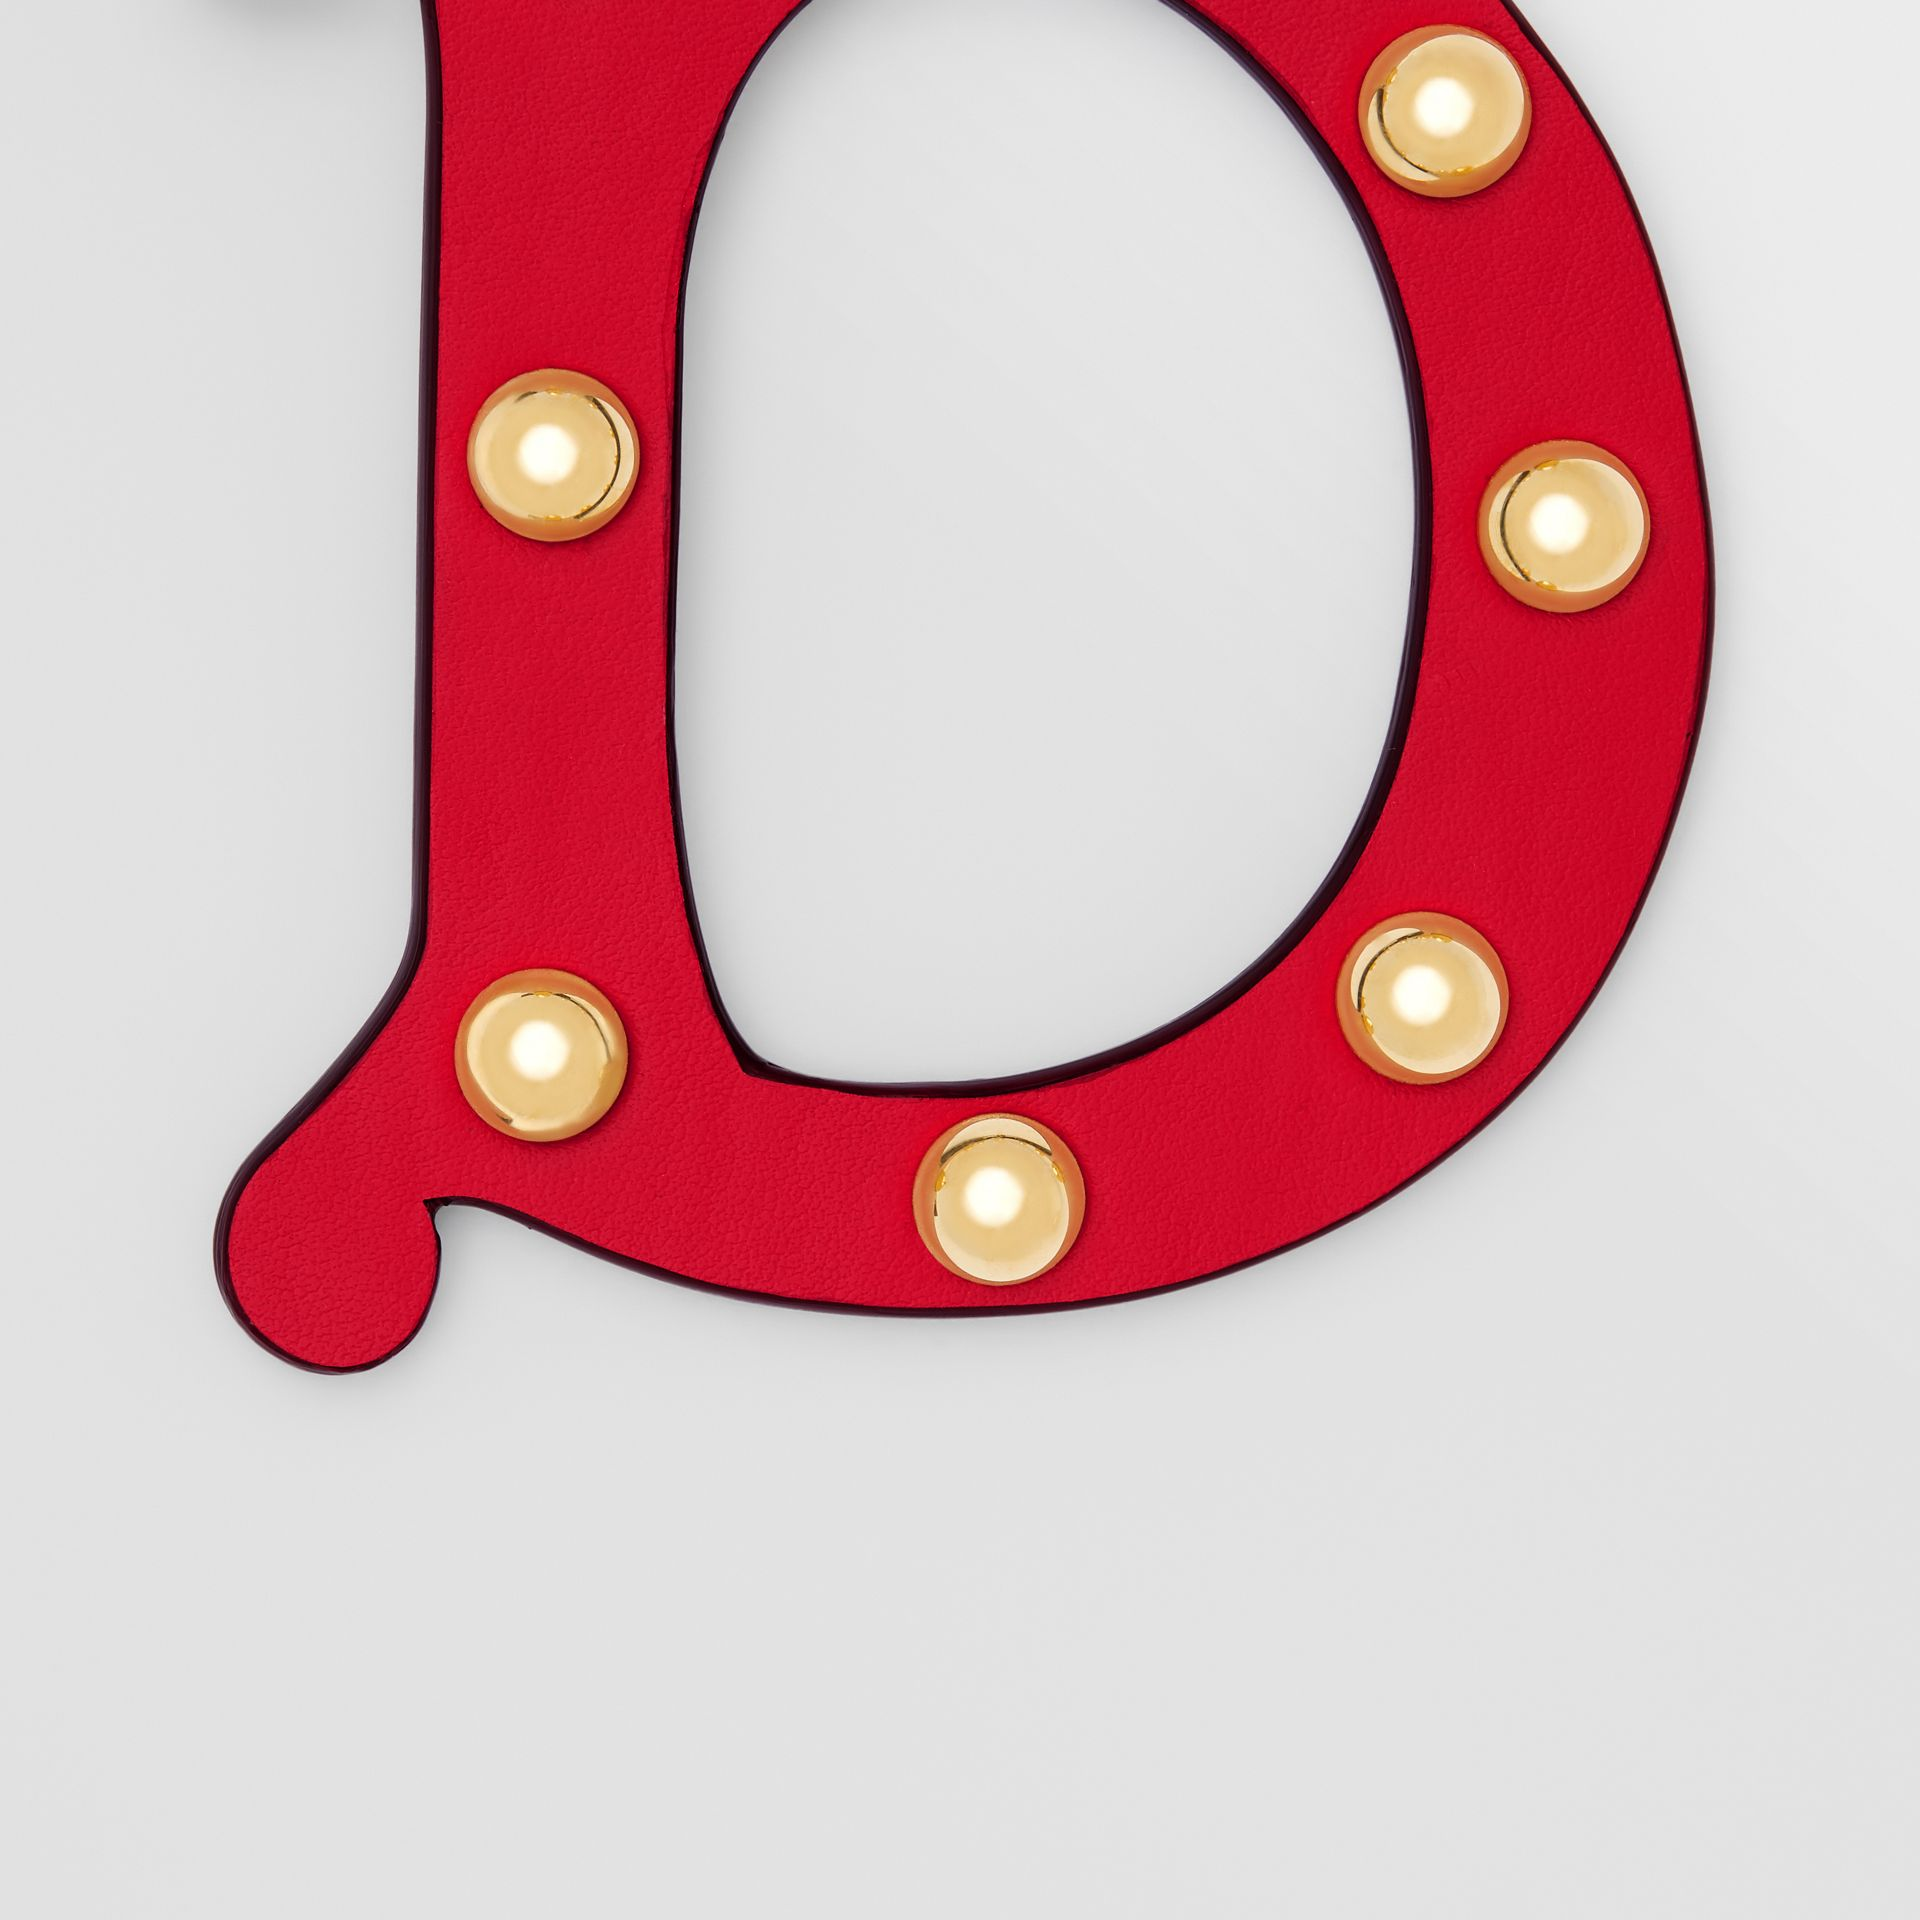 'D' Studded Leather Alphabet Charm in Red/light Gold - Women   Burberry - gallery image 1